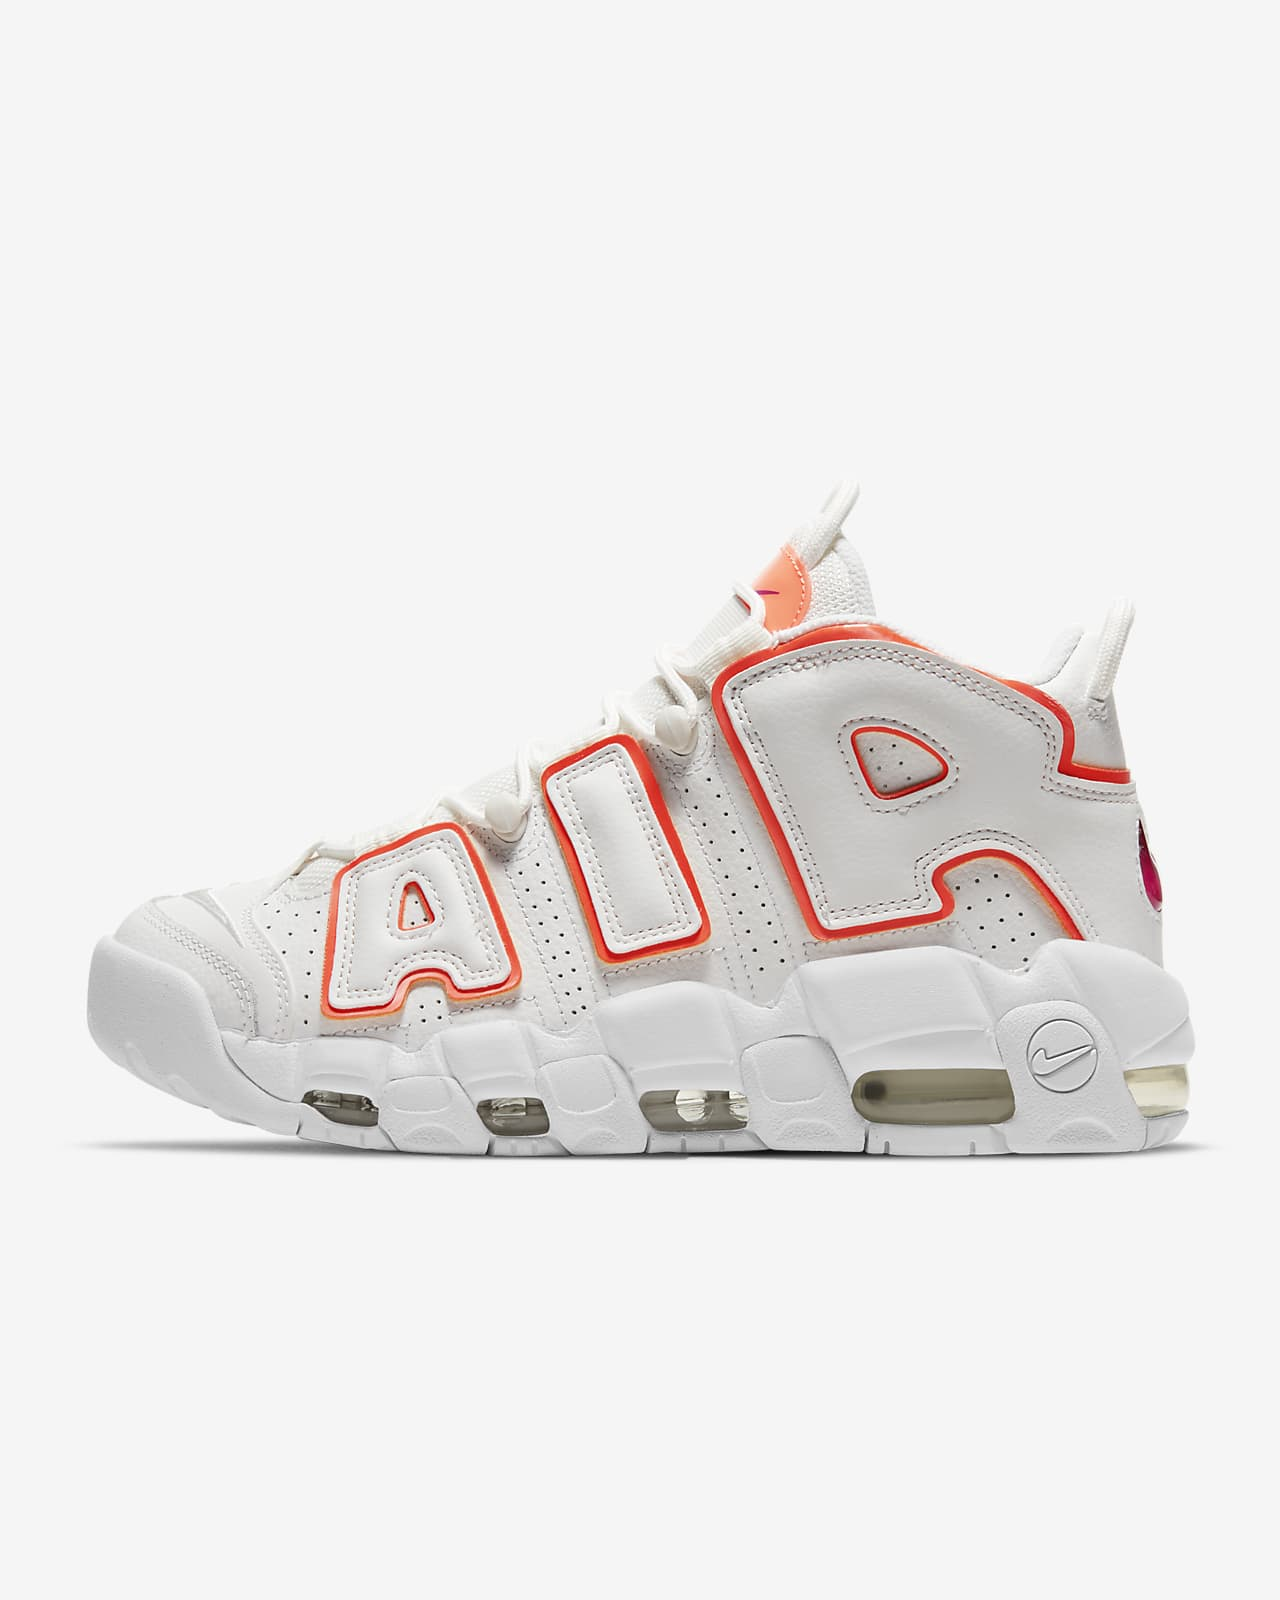 Chaussure Nike Air More Uptempo pour Femme